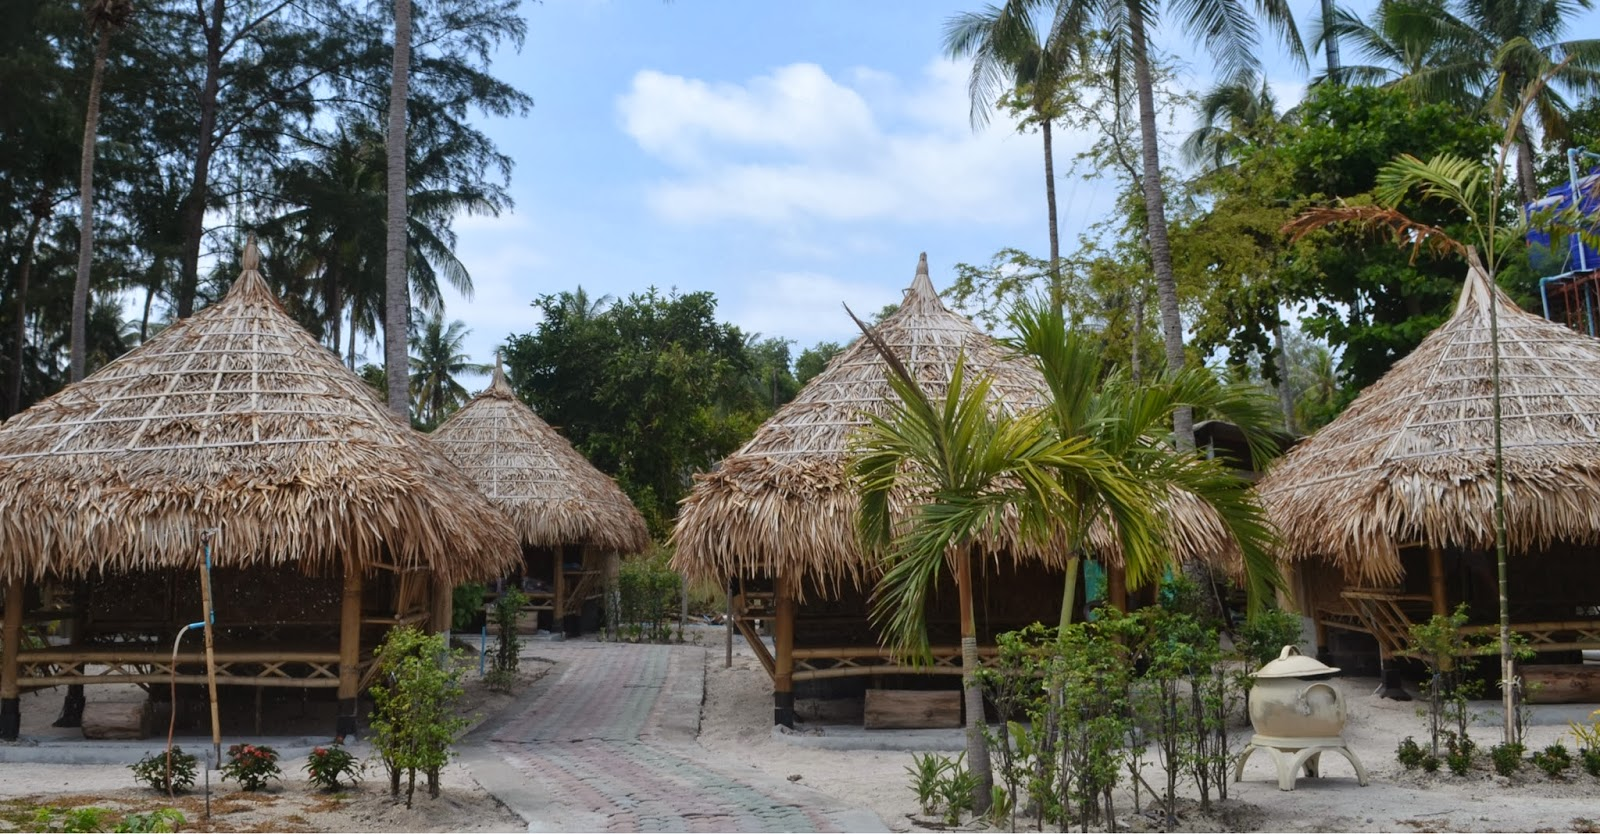 Satun dive resort beach huts koh lipe